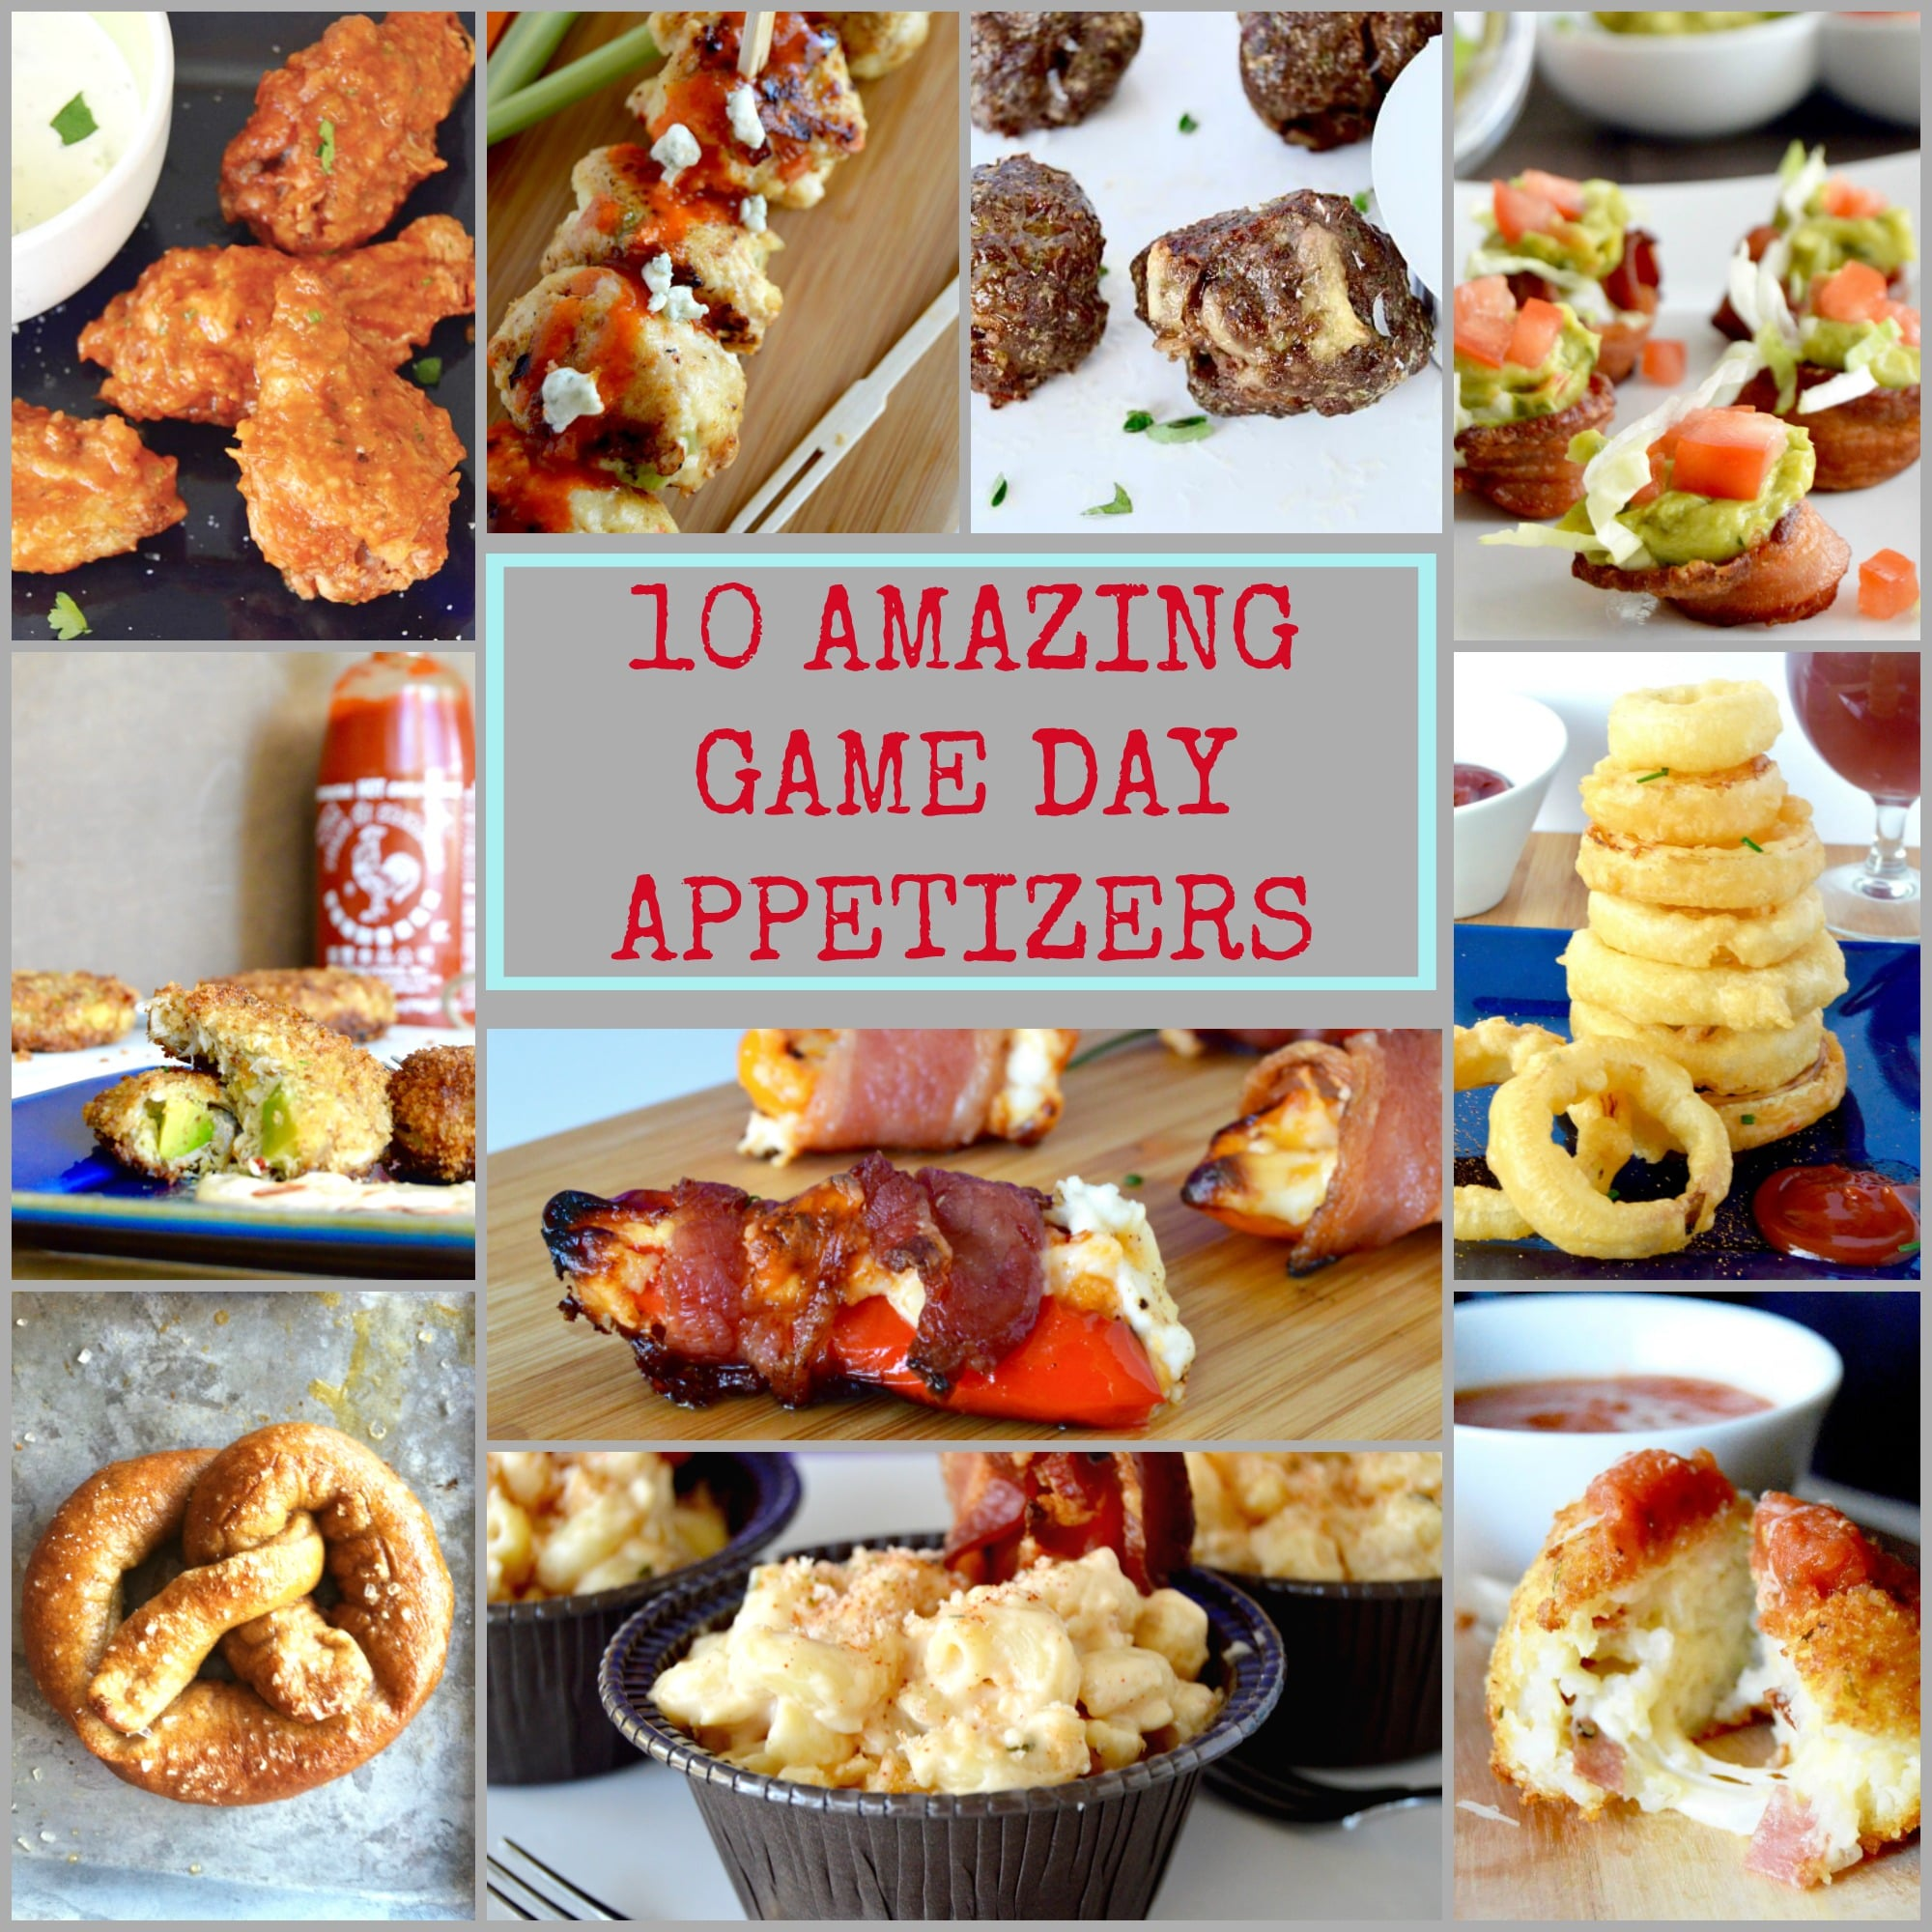 APPETIZERS-GAMEDAY-SUPERBOWL-BITE SIZED